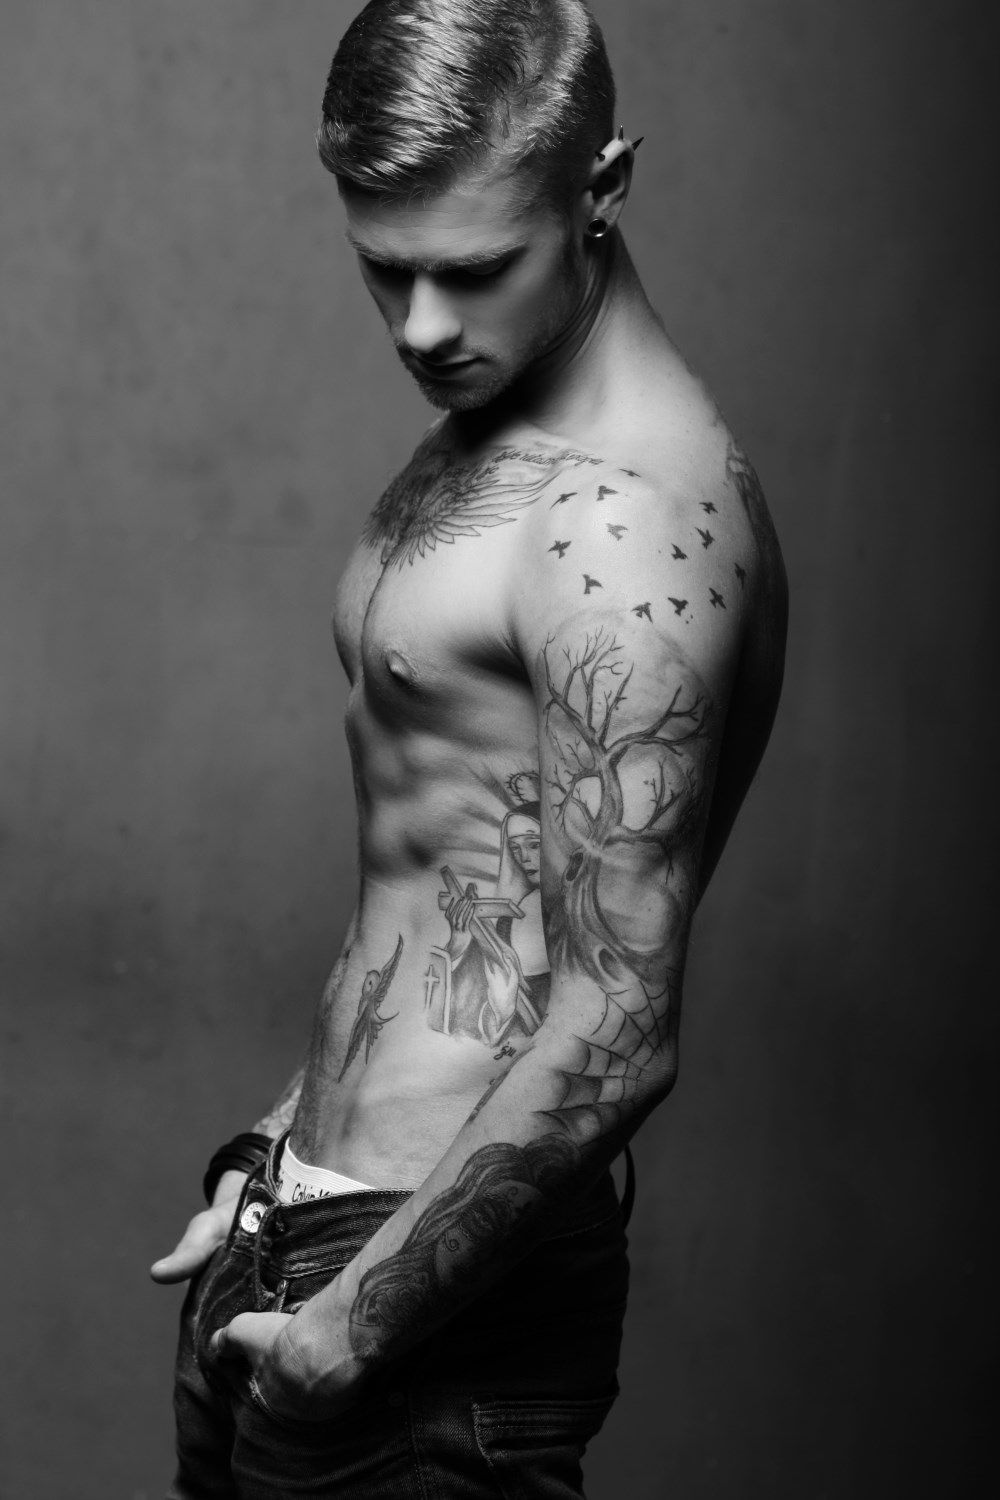 Hookup Site For Guys With Tattoos